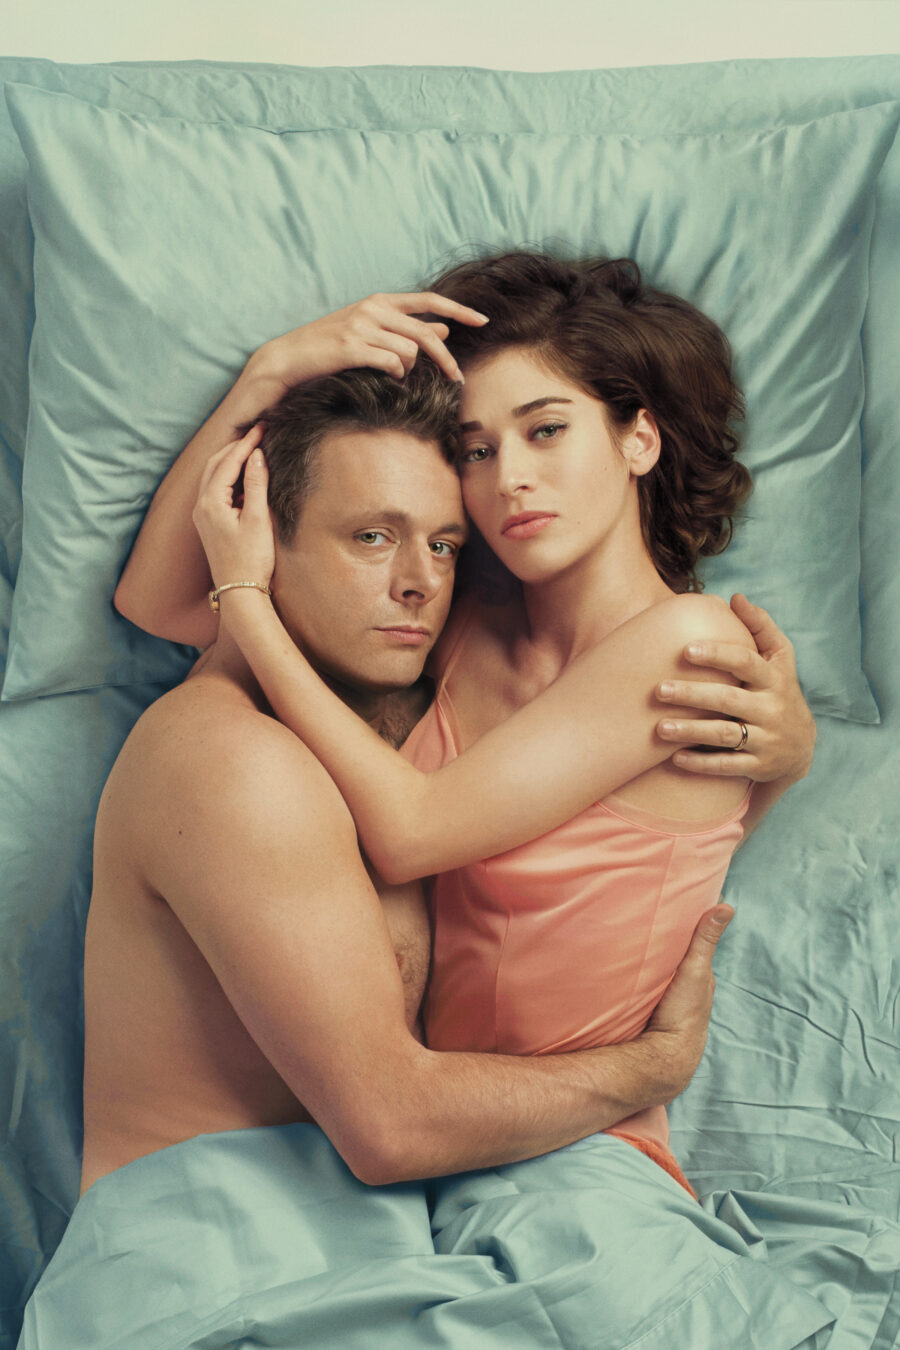 Lizzy Caplan And Her Relaxed View On Nudity After Experience